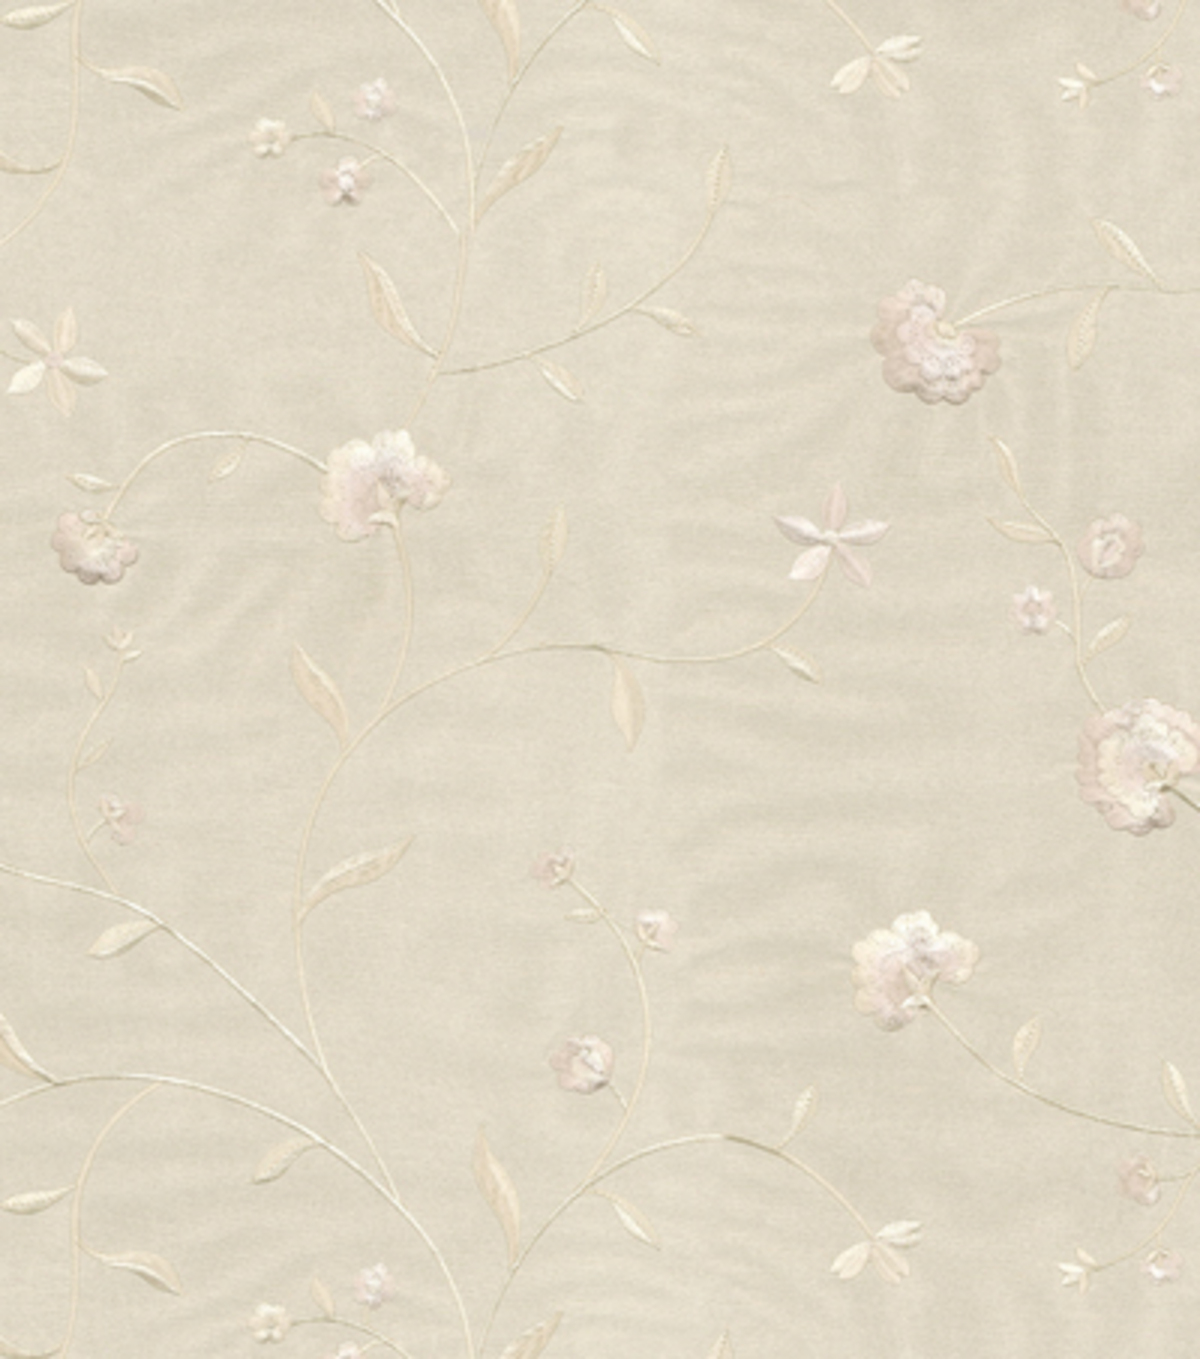 Home Decor 8\u0022x8\u0022 Fabric Swatch-Richloom Studio Warwick Pearl